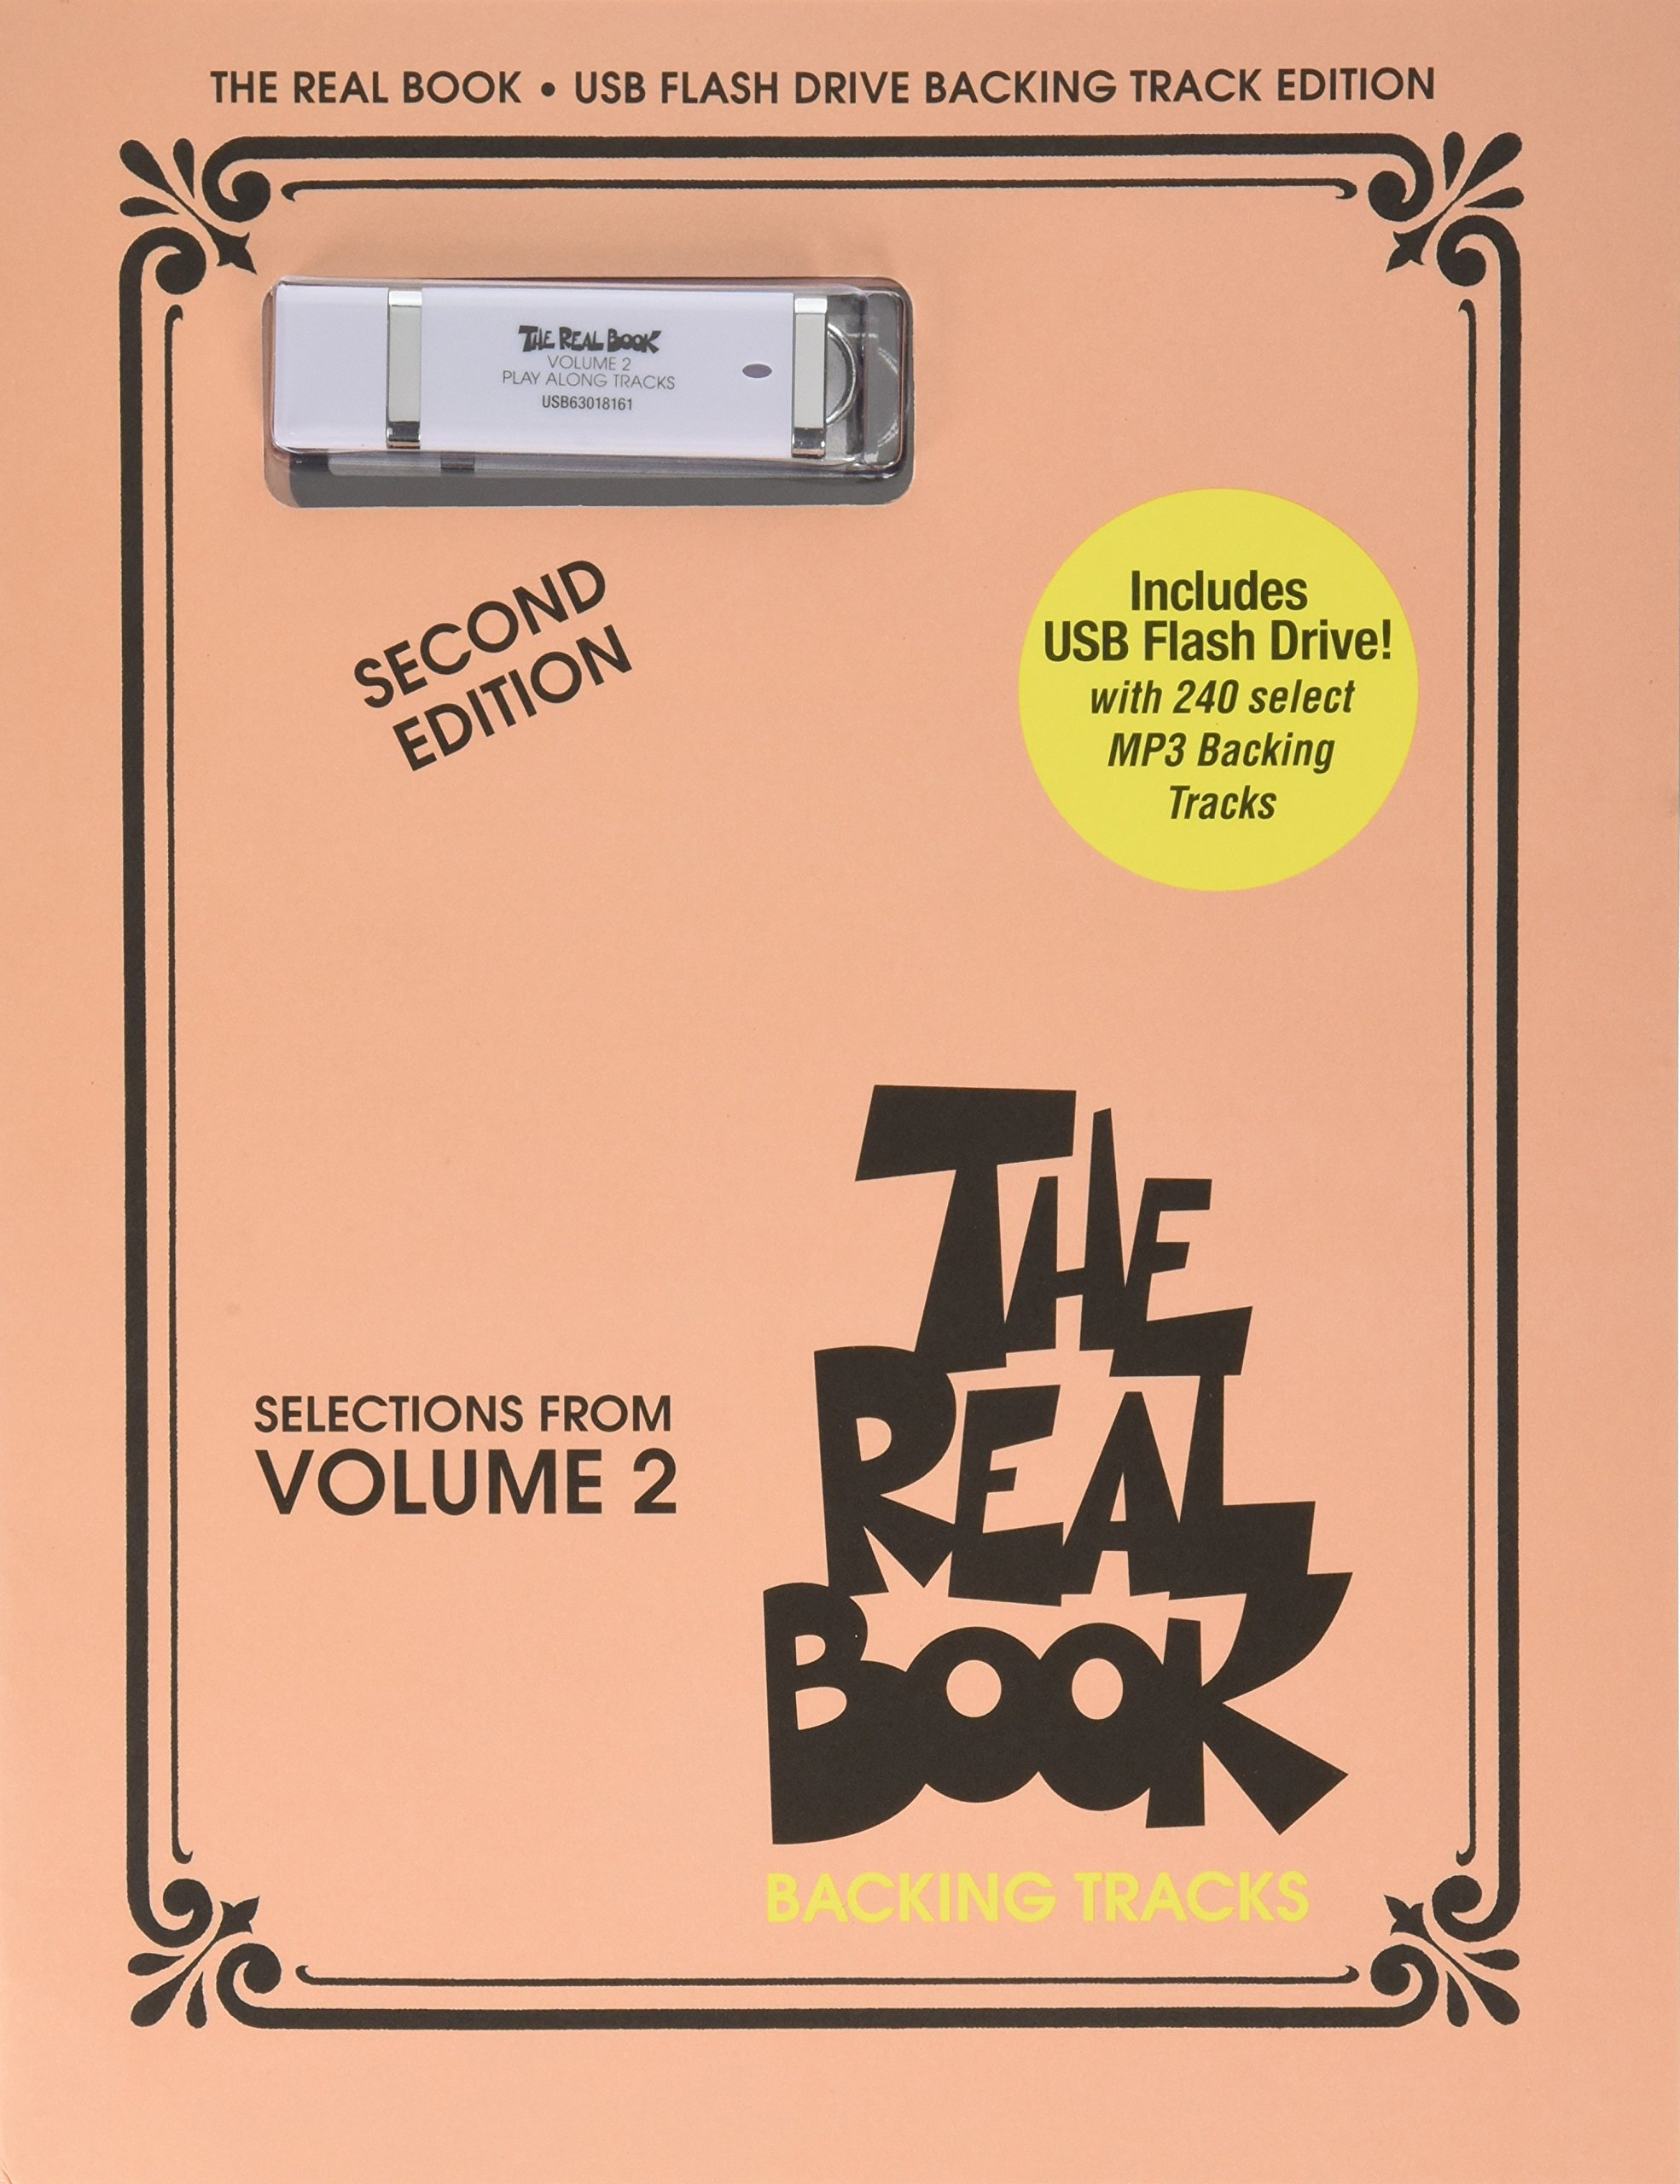 The Real Book - Volume 2: USB Flash Drive Backing Track